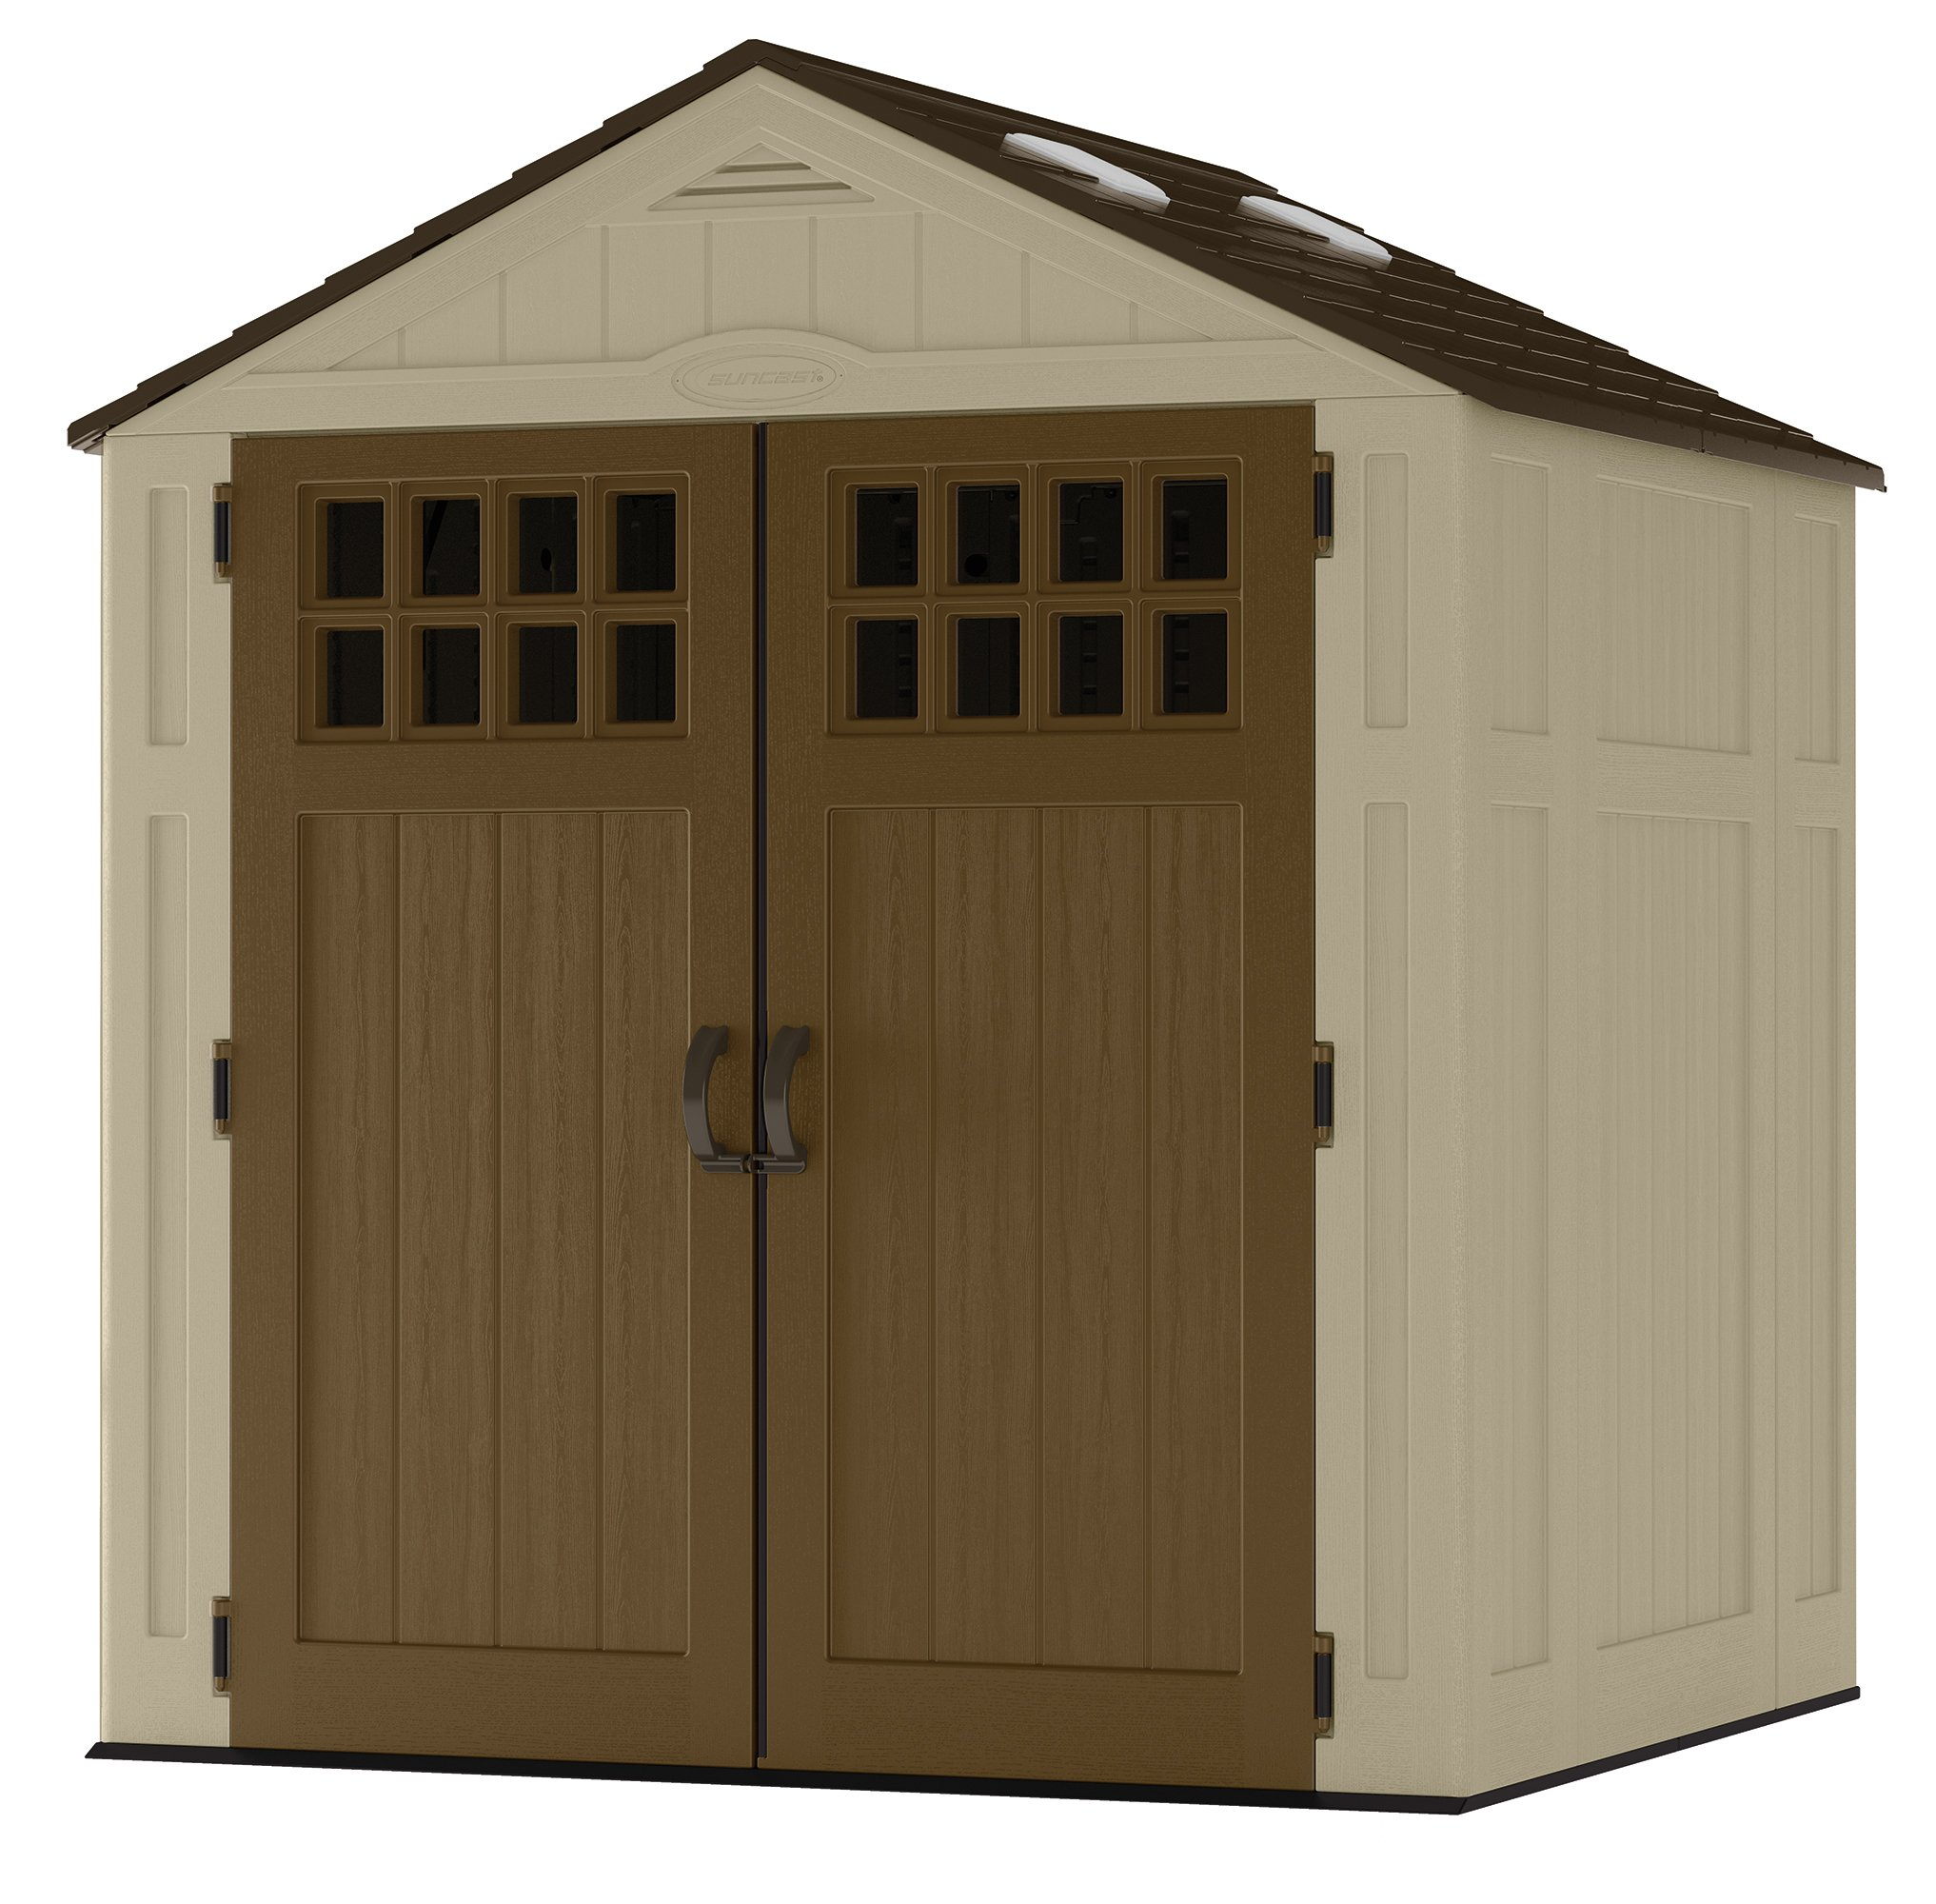 Suncast BMS6510D 6 Feet By 5 Feet Blow Molded Storage Shed Product Image